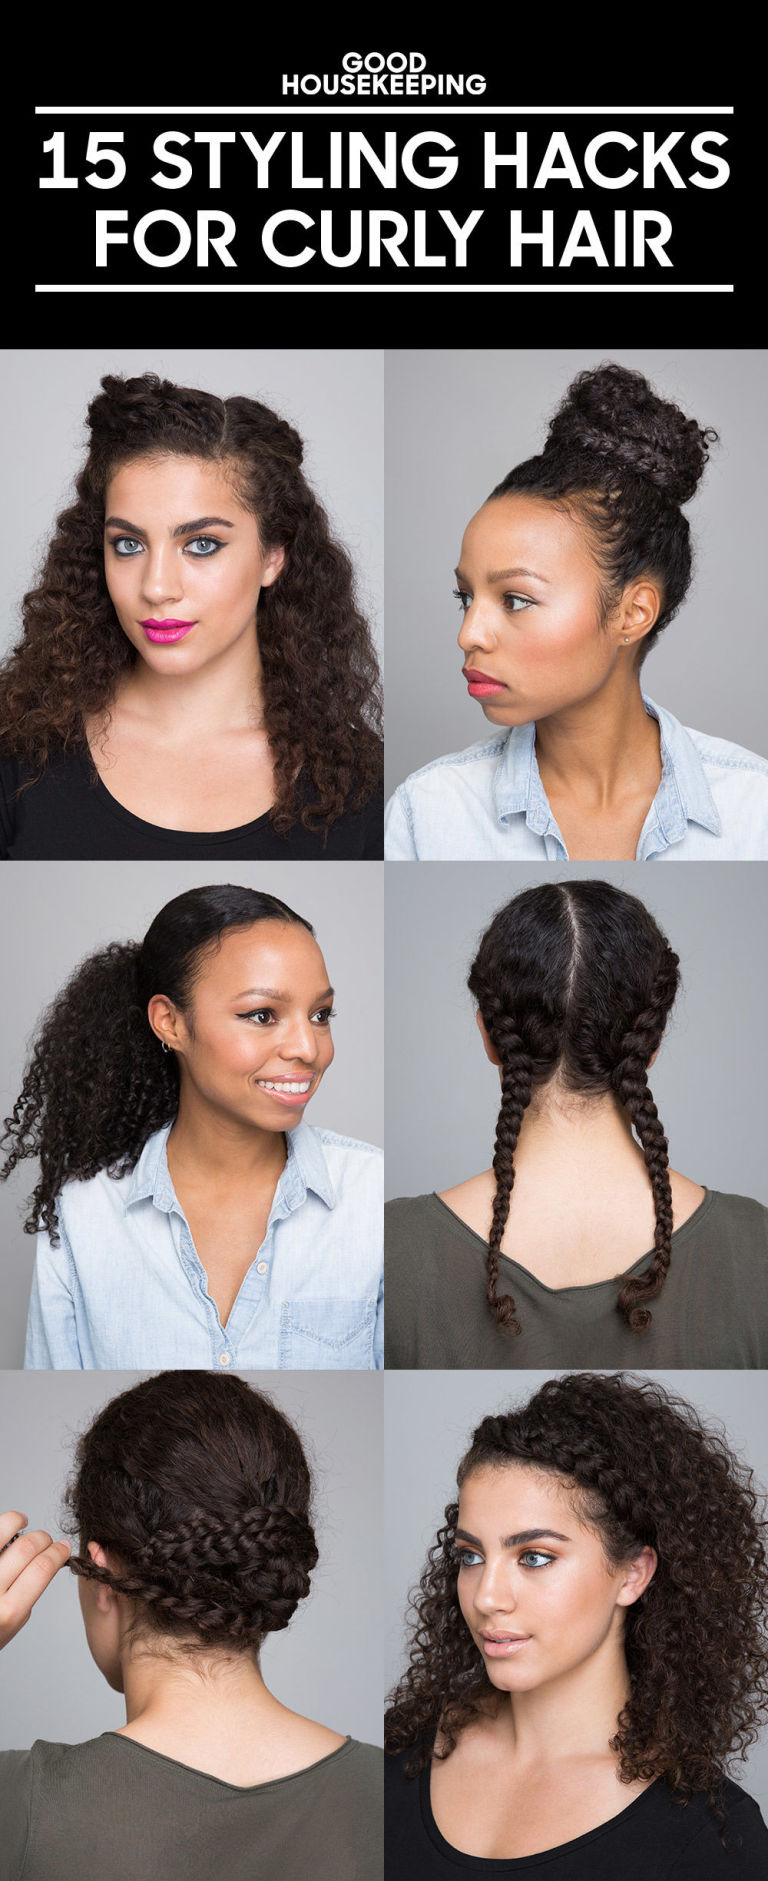 Ways To Style Curly Hair When Wet 17 Best Curly Hair Tips  How To Style Curly Hair